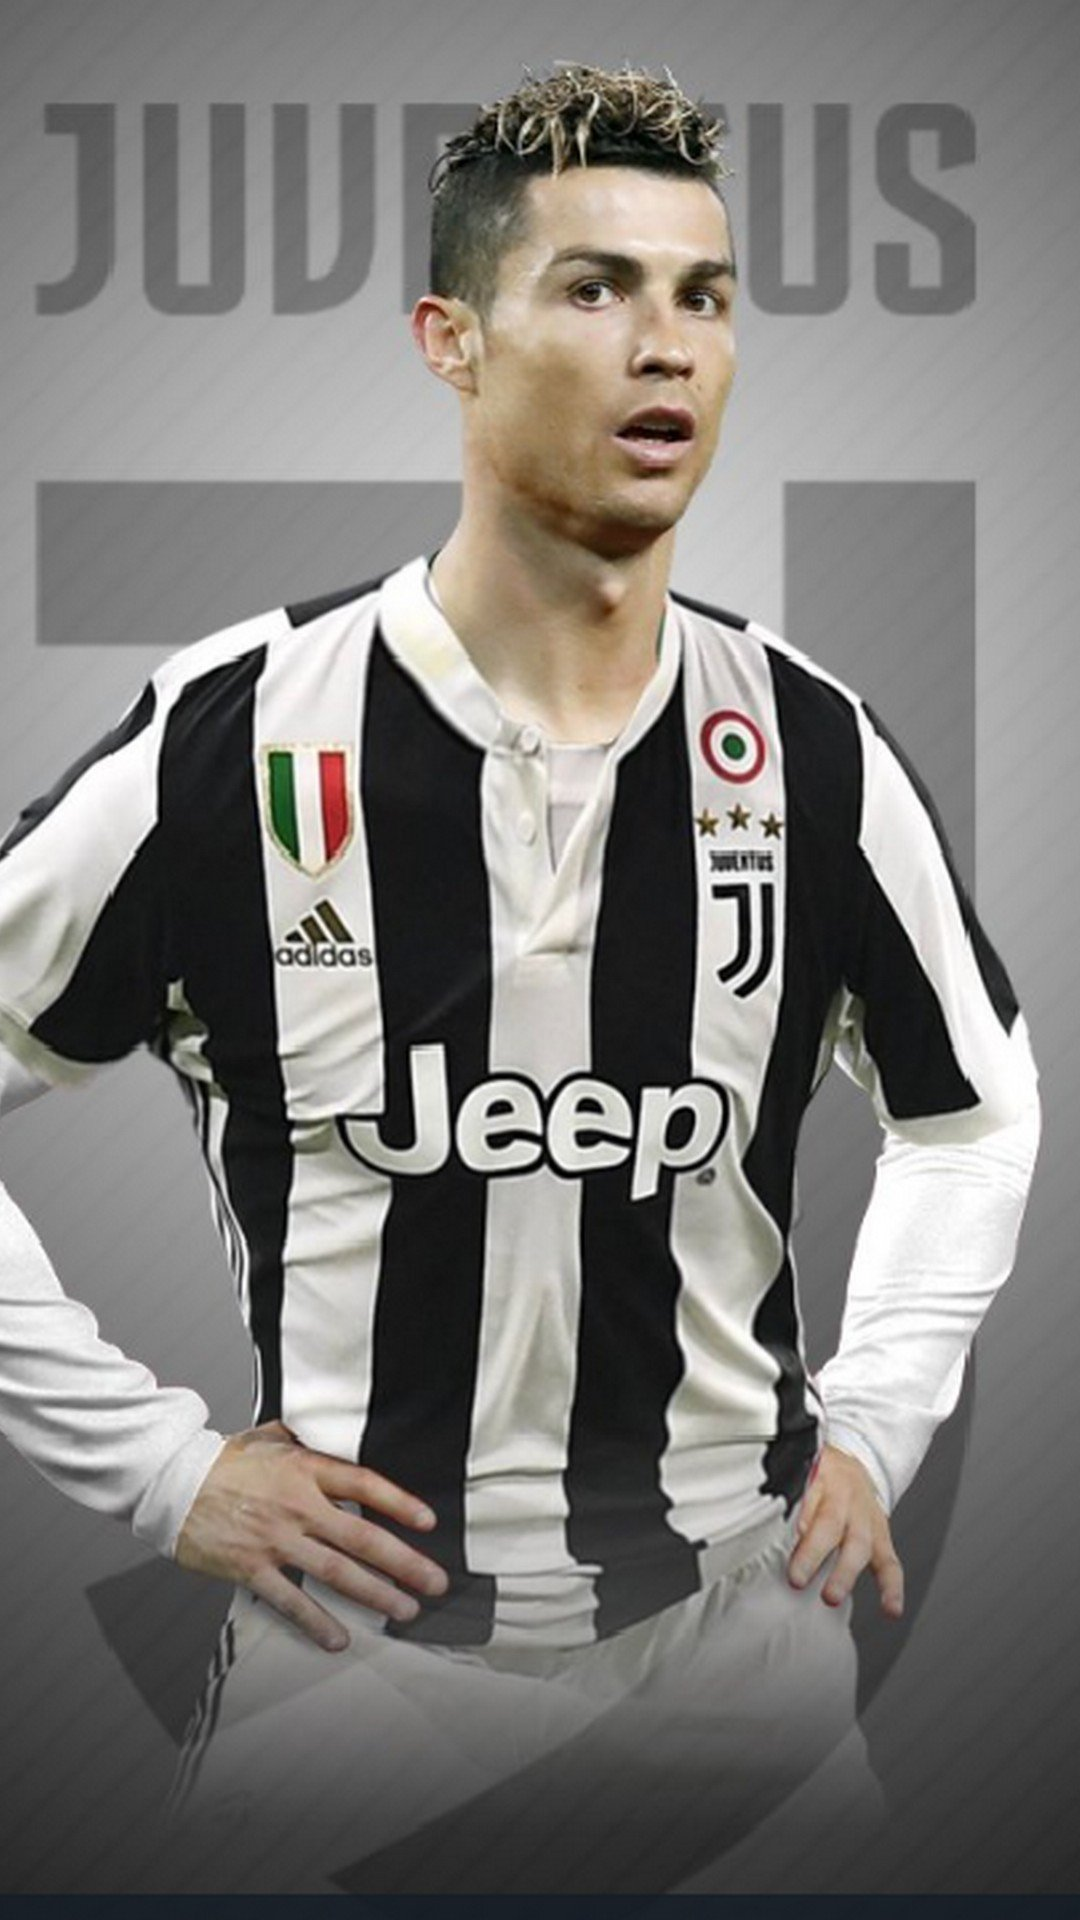 Wallpaper Cristiano Ronaldo Juventus Android   2020 Android Wallpapers 1080x1920